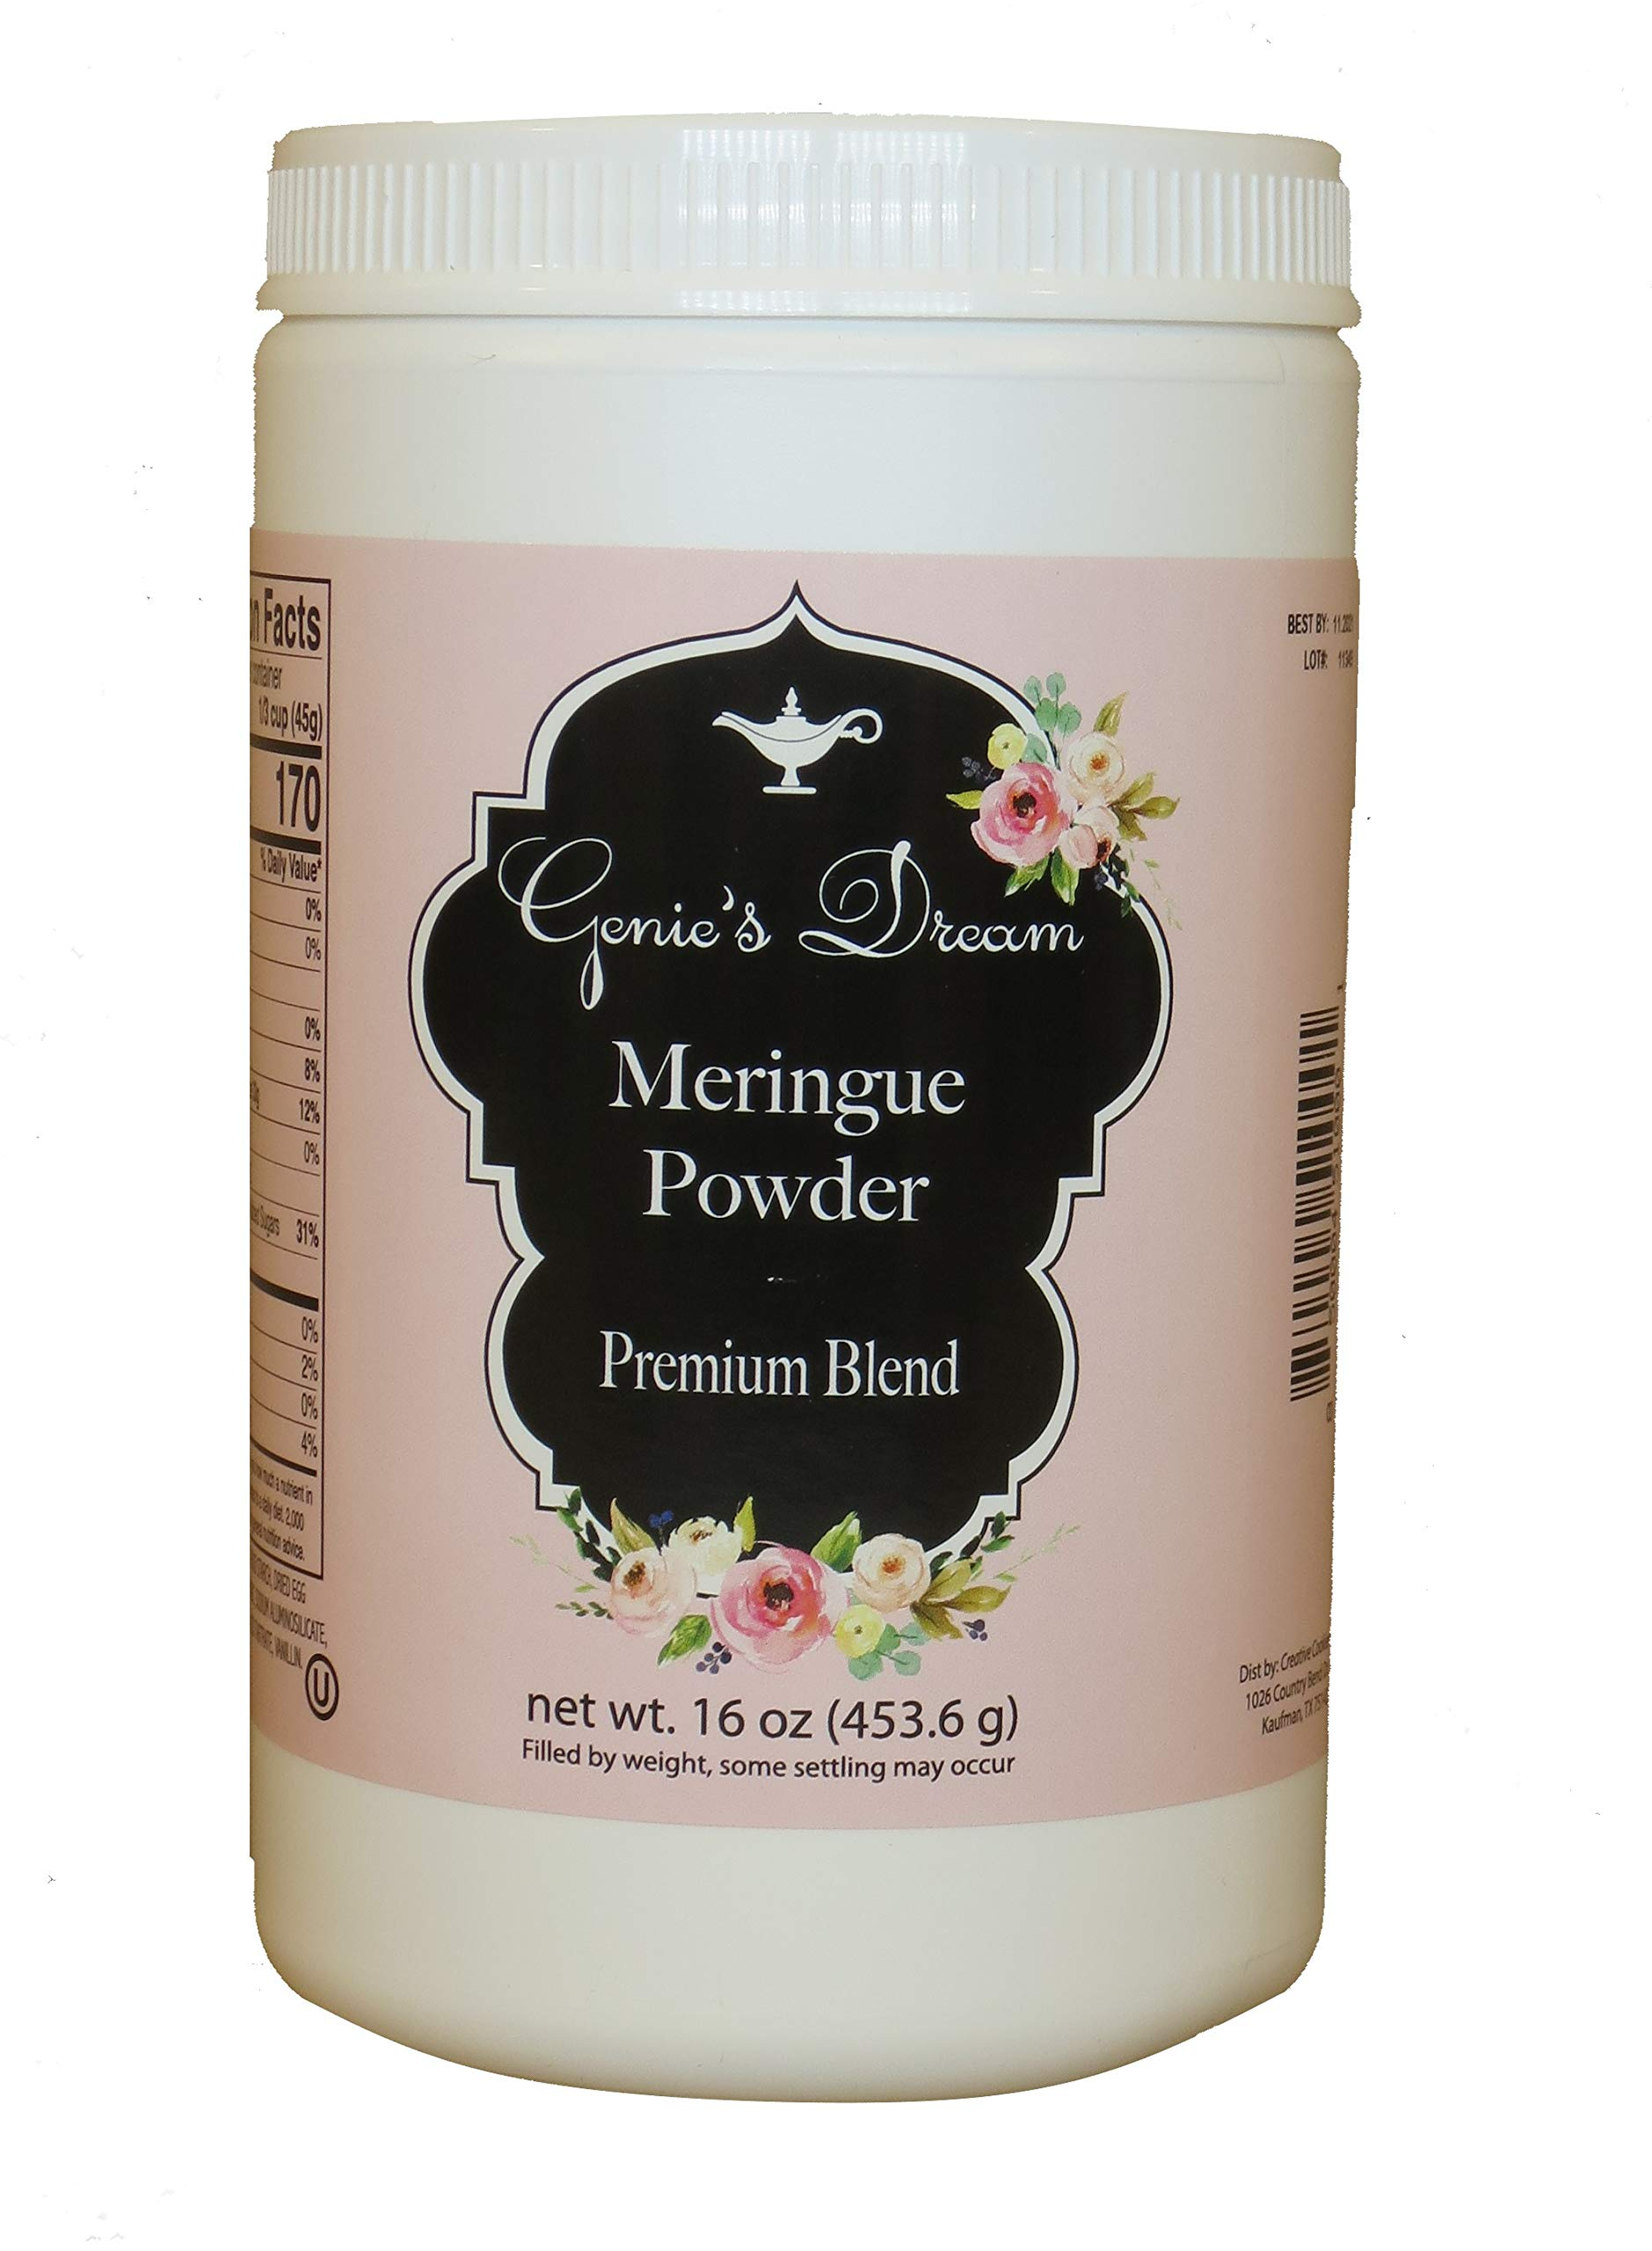 Genie's Dream Premium Meringue Powder, 16 oz (1 lb) jar